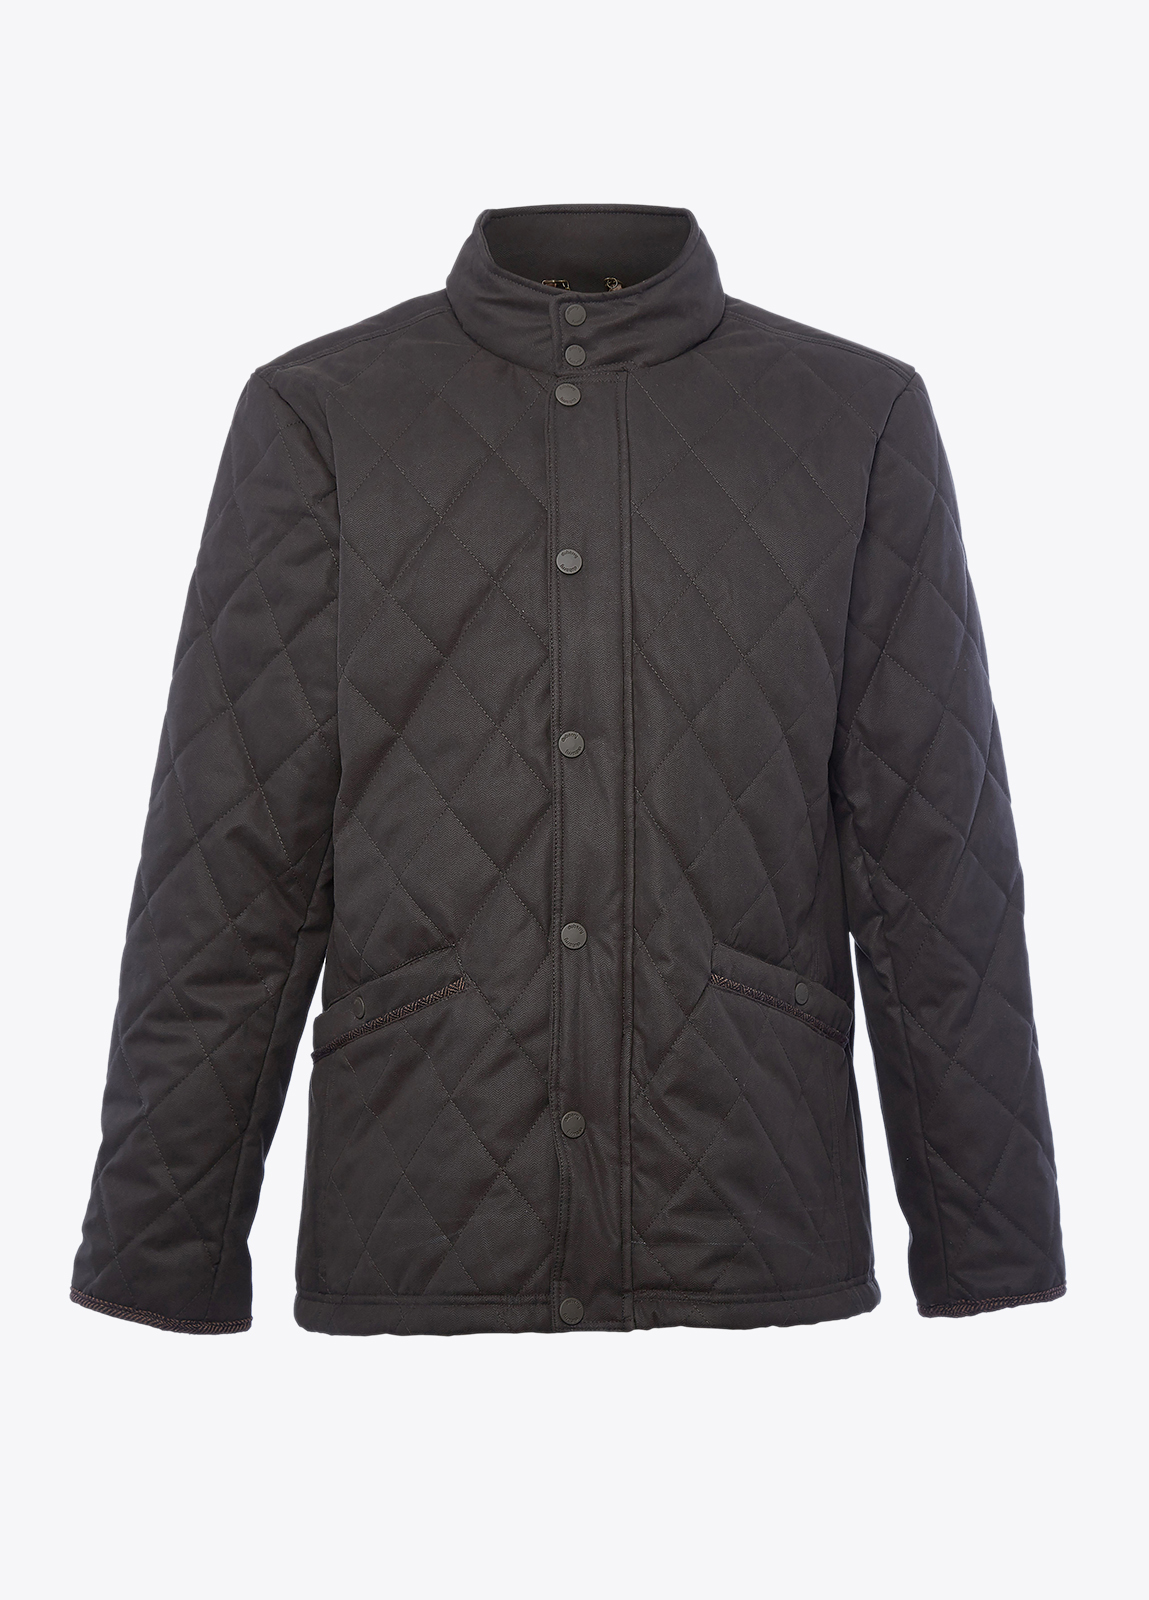 Bantry Quilted Jacket - Verdigris